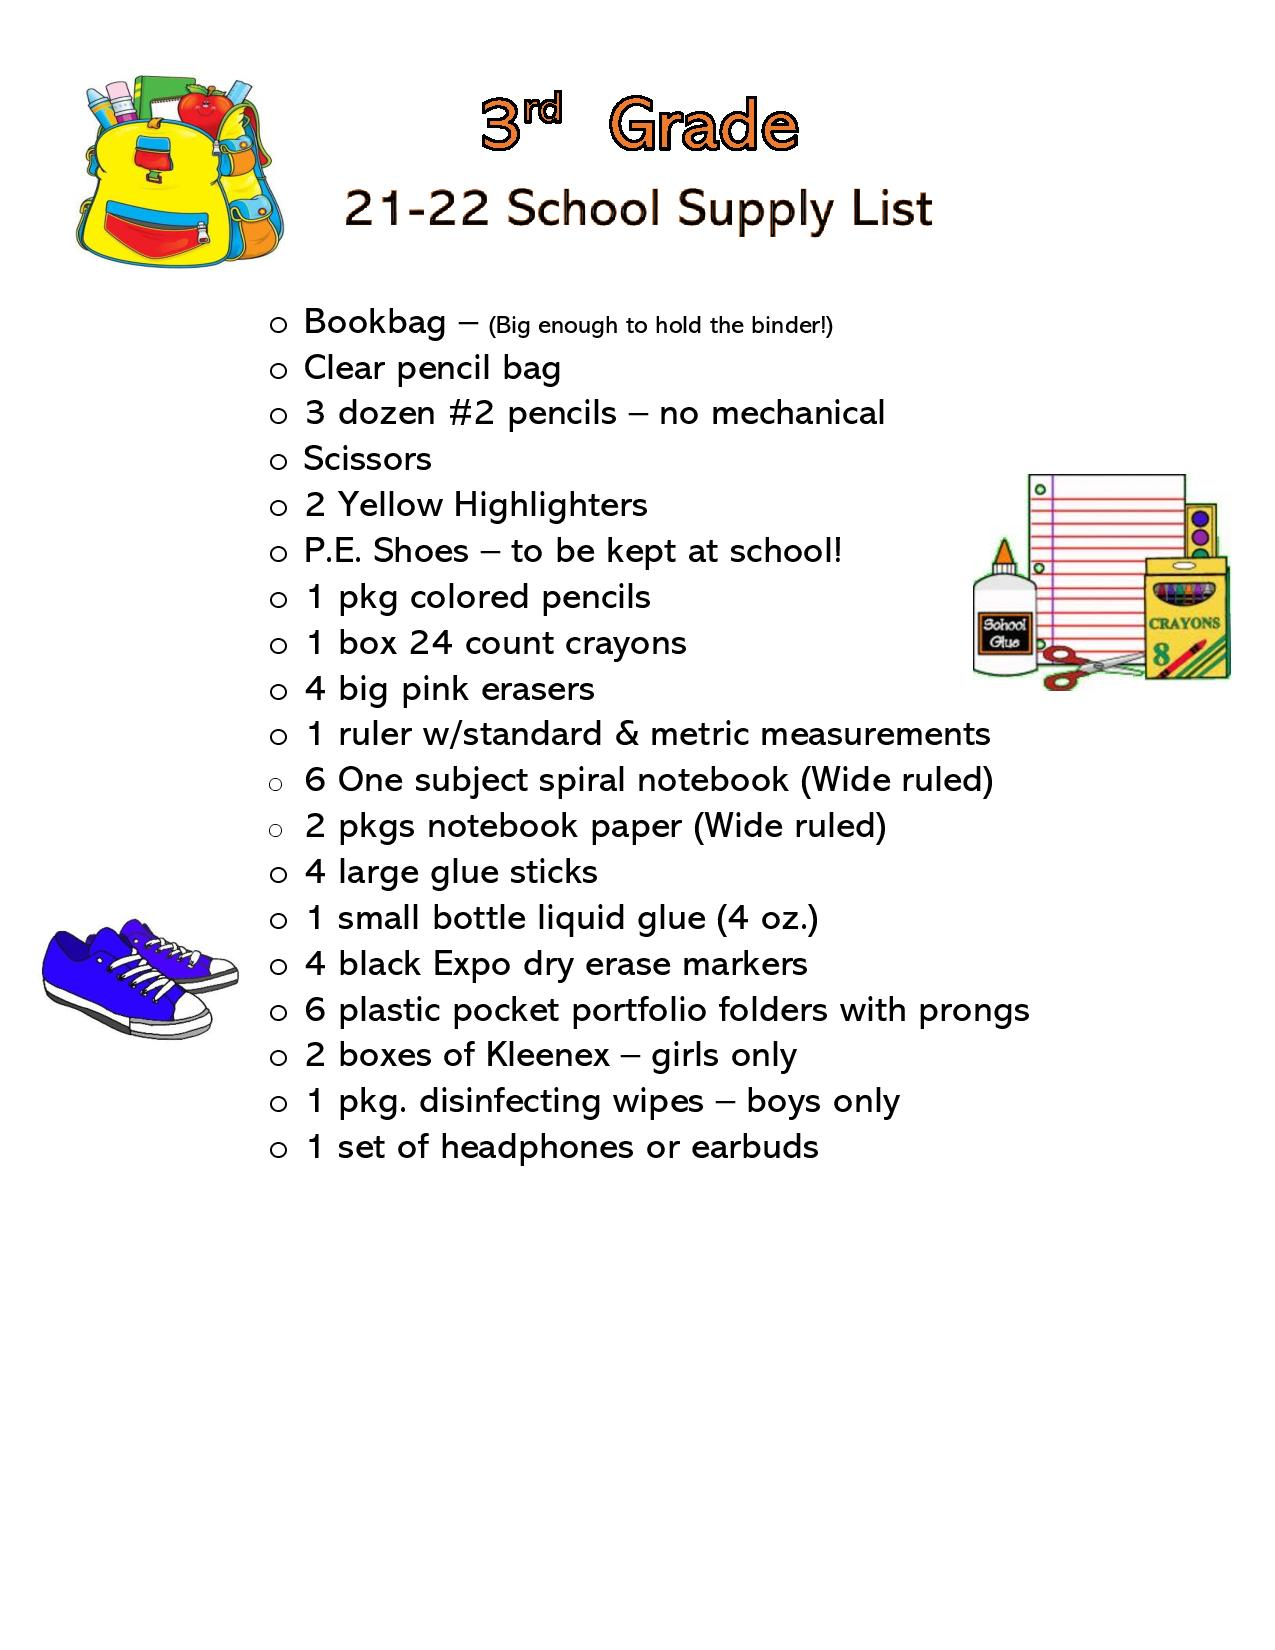 Click on the picture for the 3rd Grade supply list.